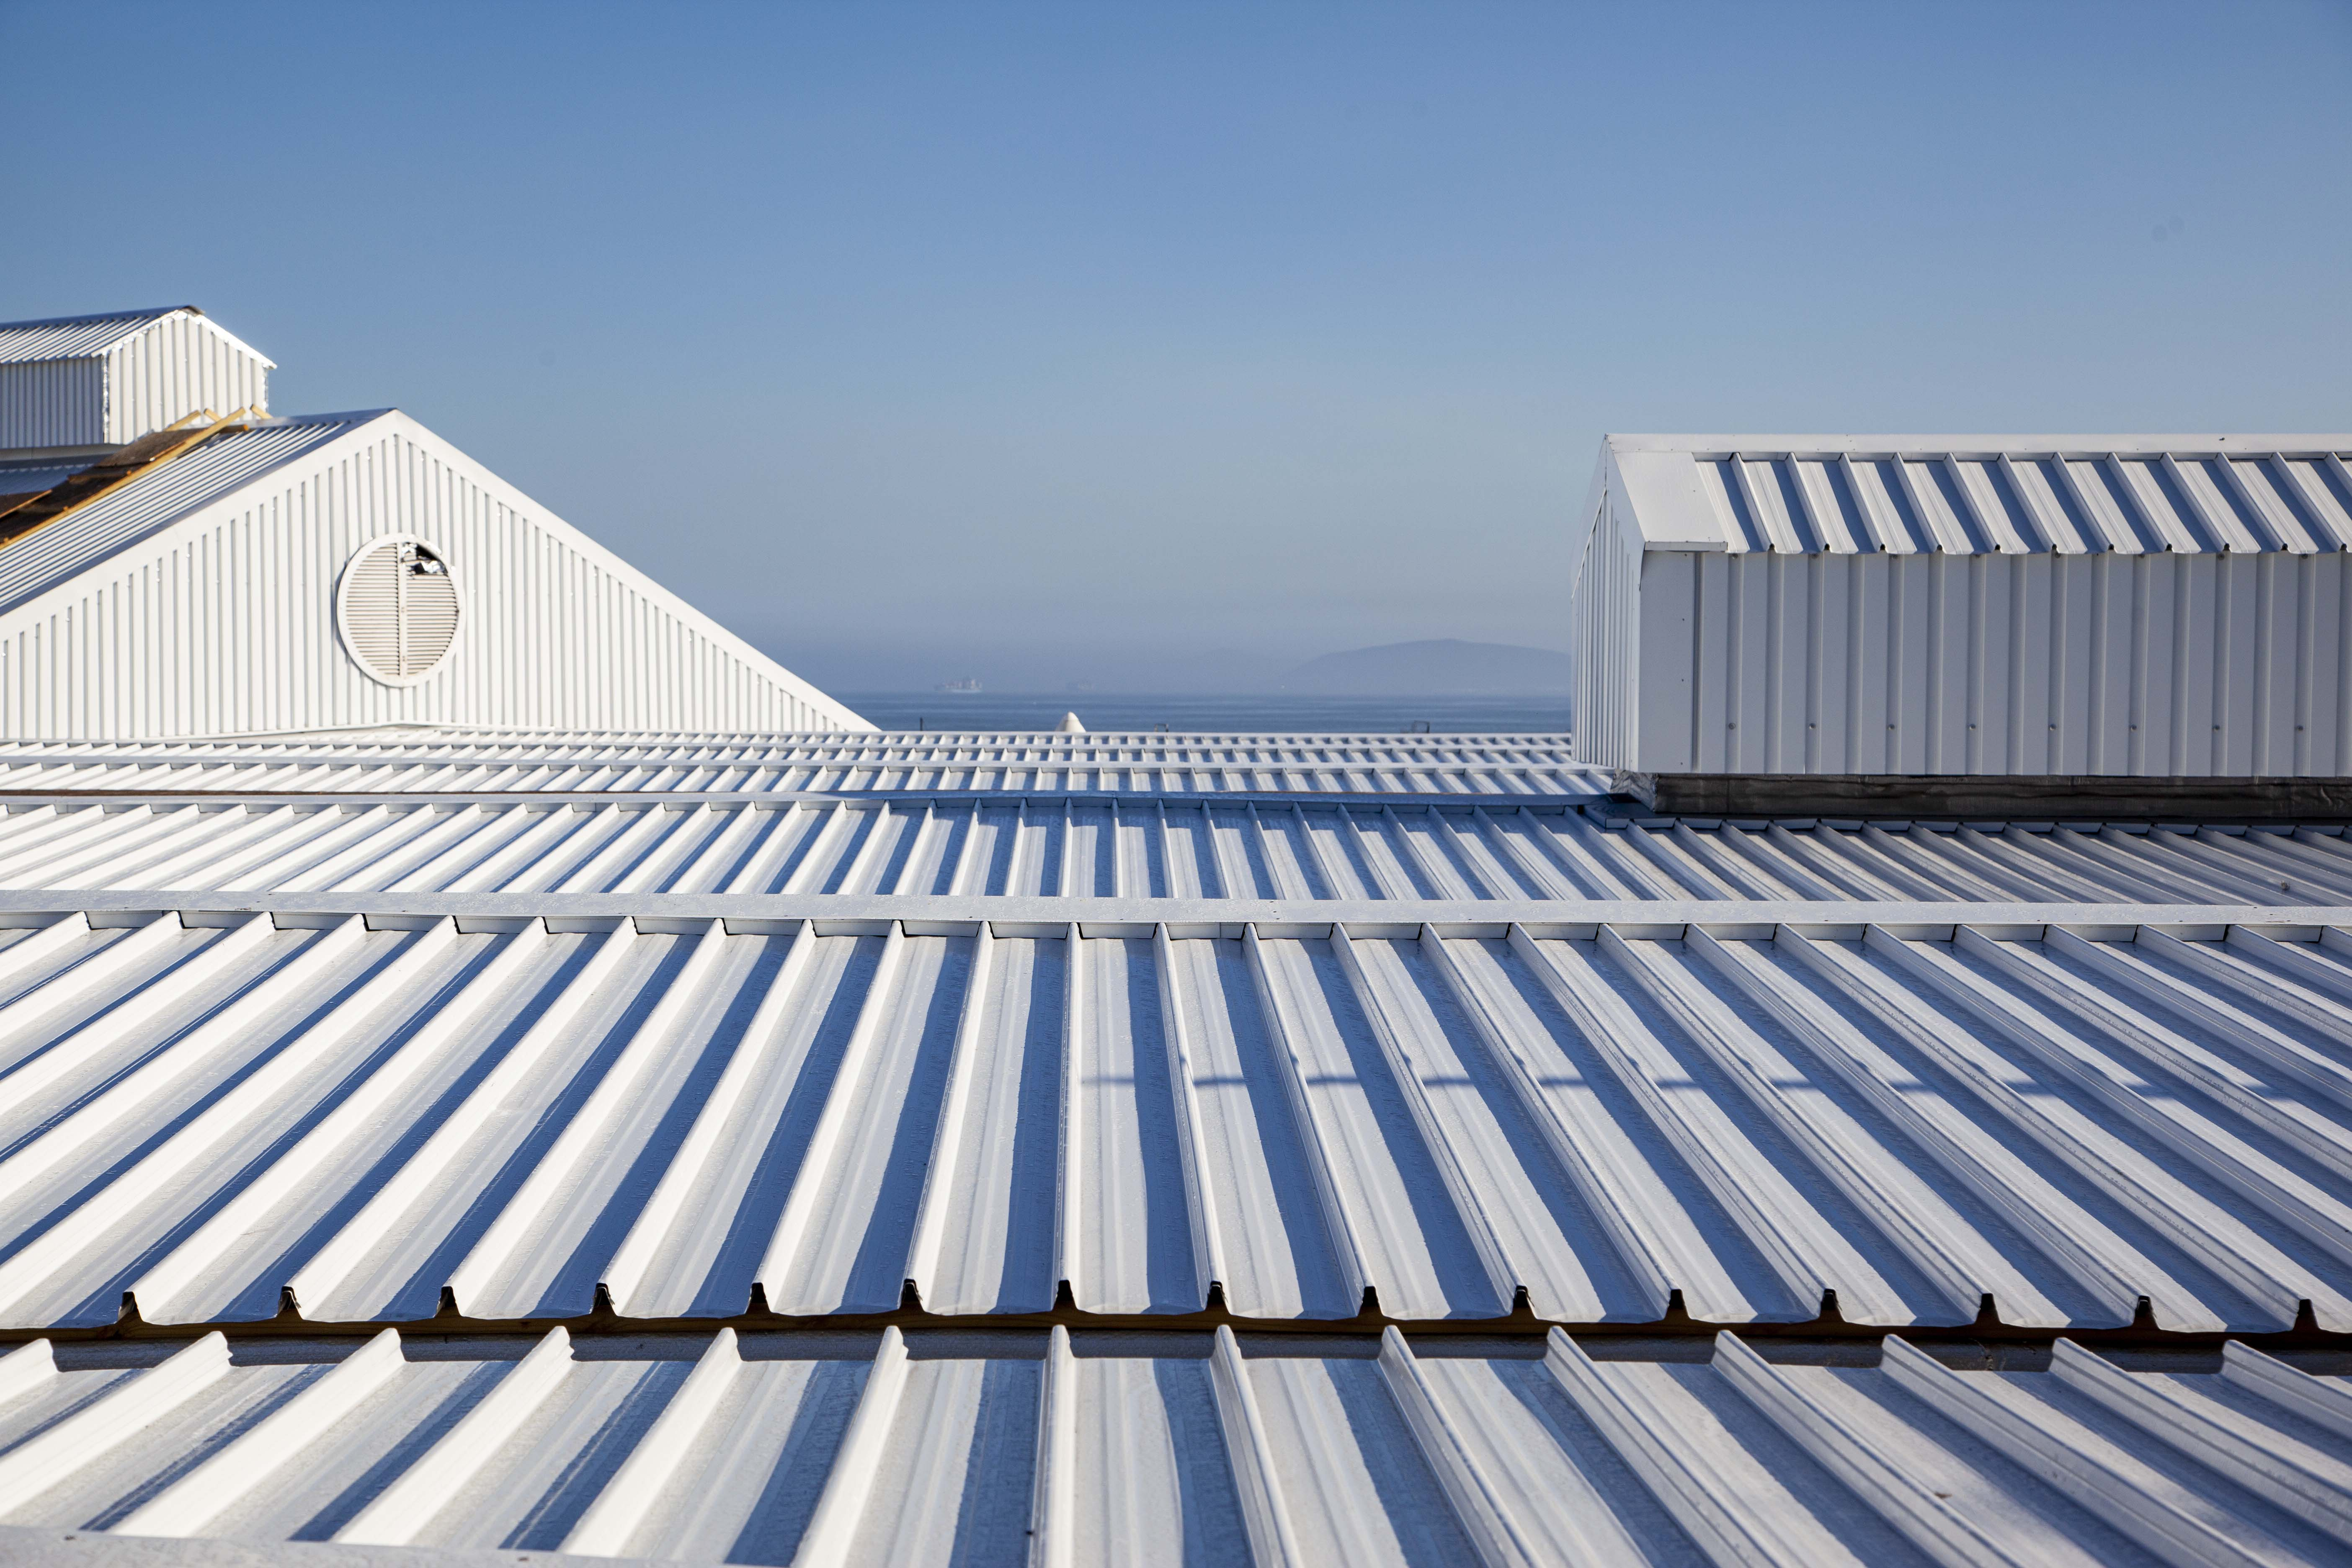 Roofing by Indawo, roofing contractor Cape Town, painting, waterproofing, structural repairs